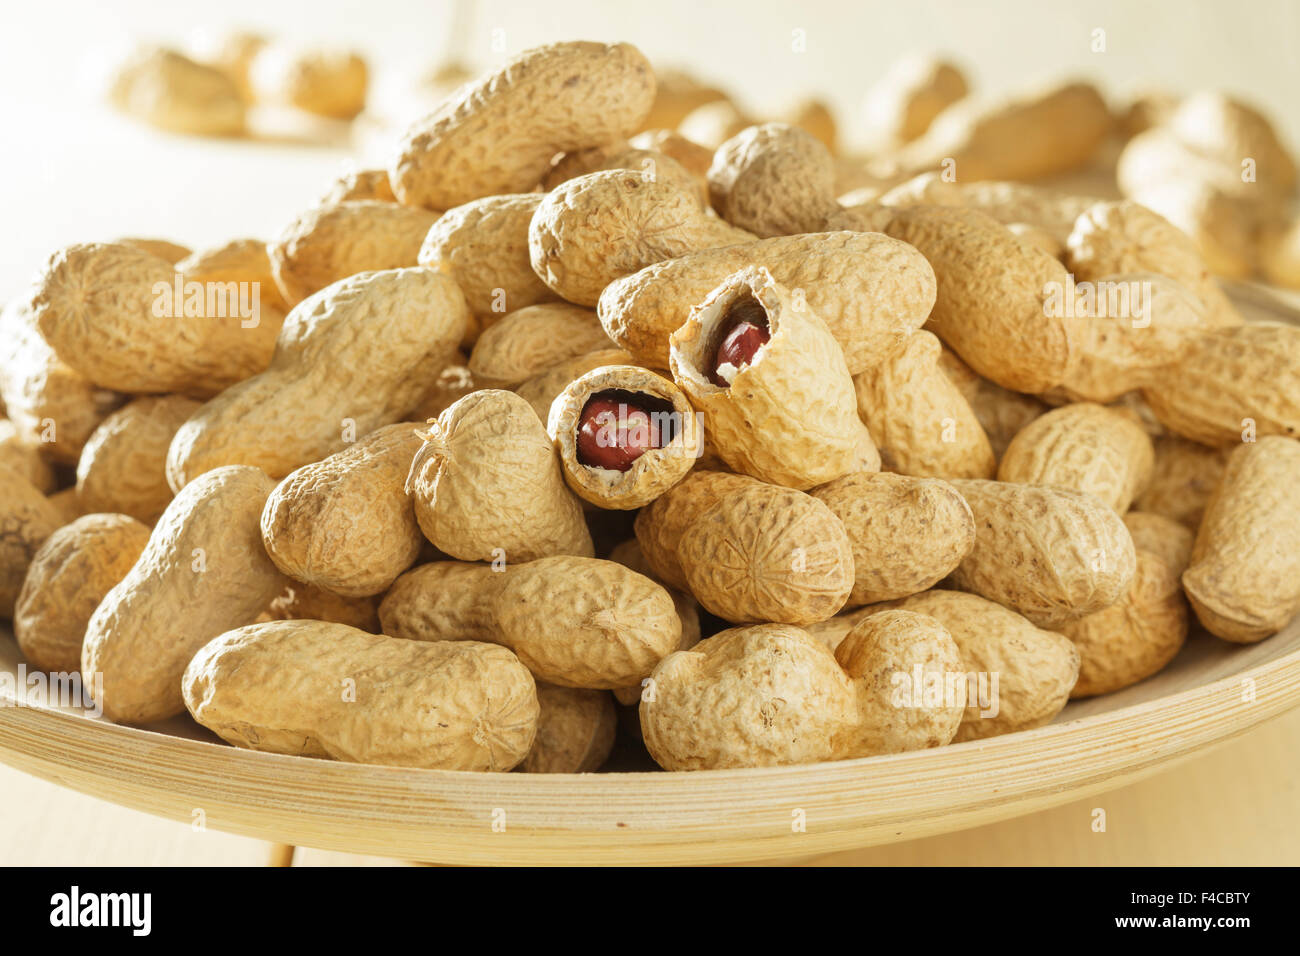 Peanuts in shells - Stock Image